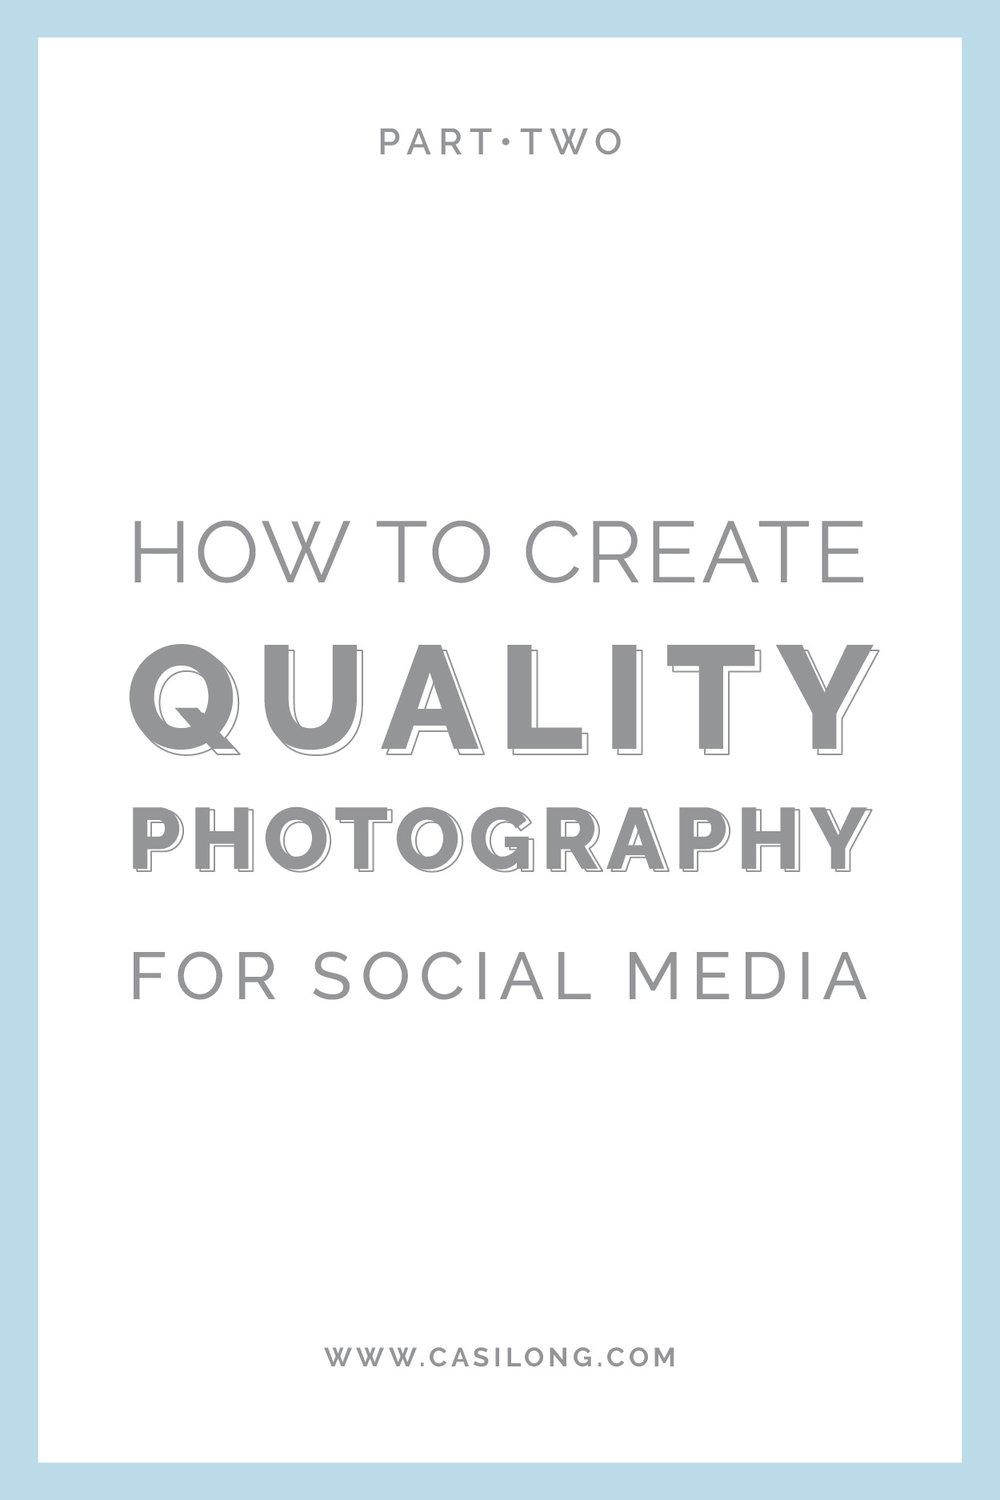 How to create Quality Photography for Social Media Part Two | casilong.com/blog | #casilongdesign #fearlesspursuit